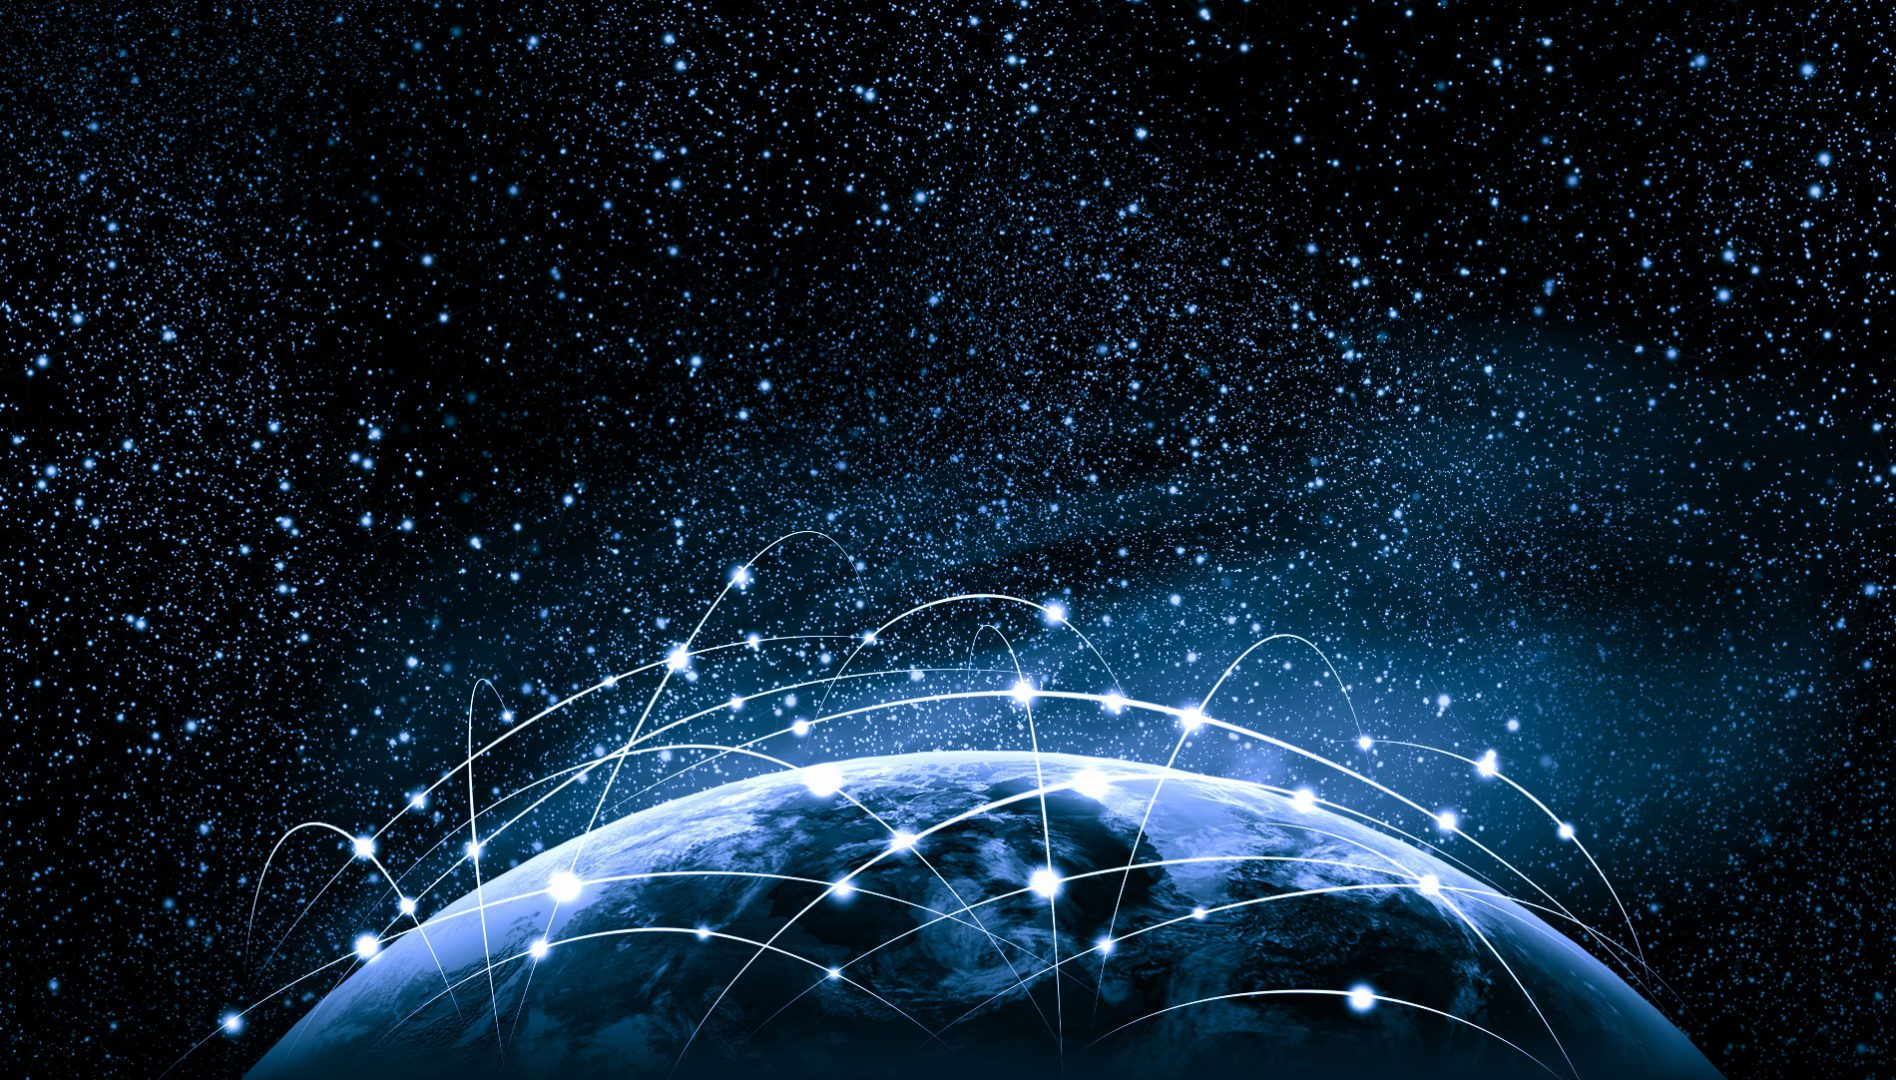 Original stock image - network of particles above planet atmosphere - Sergey Nivens